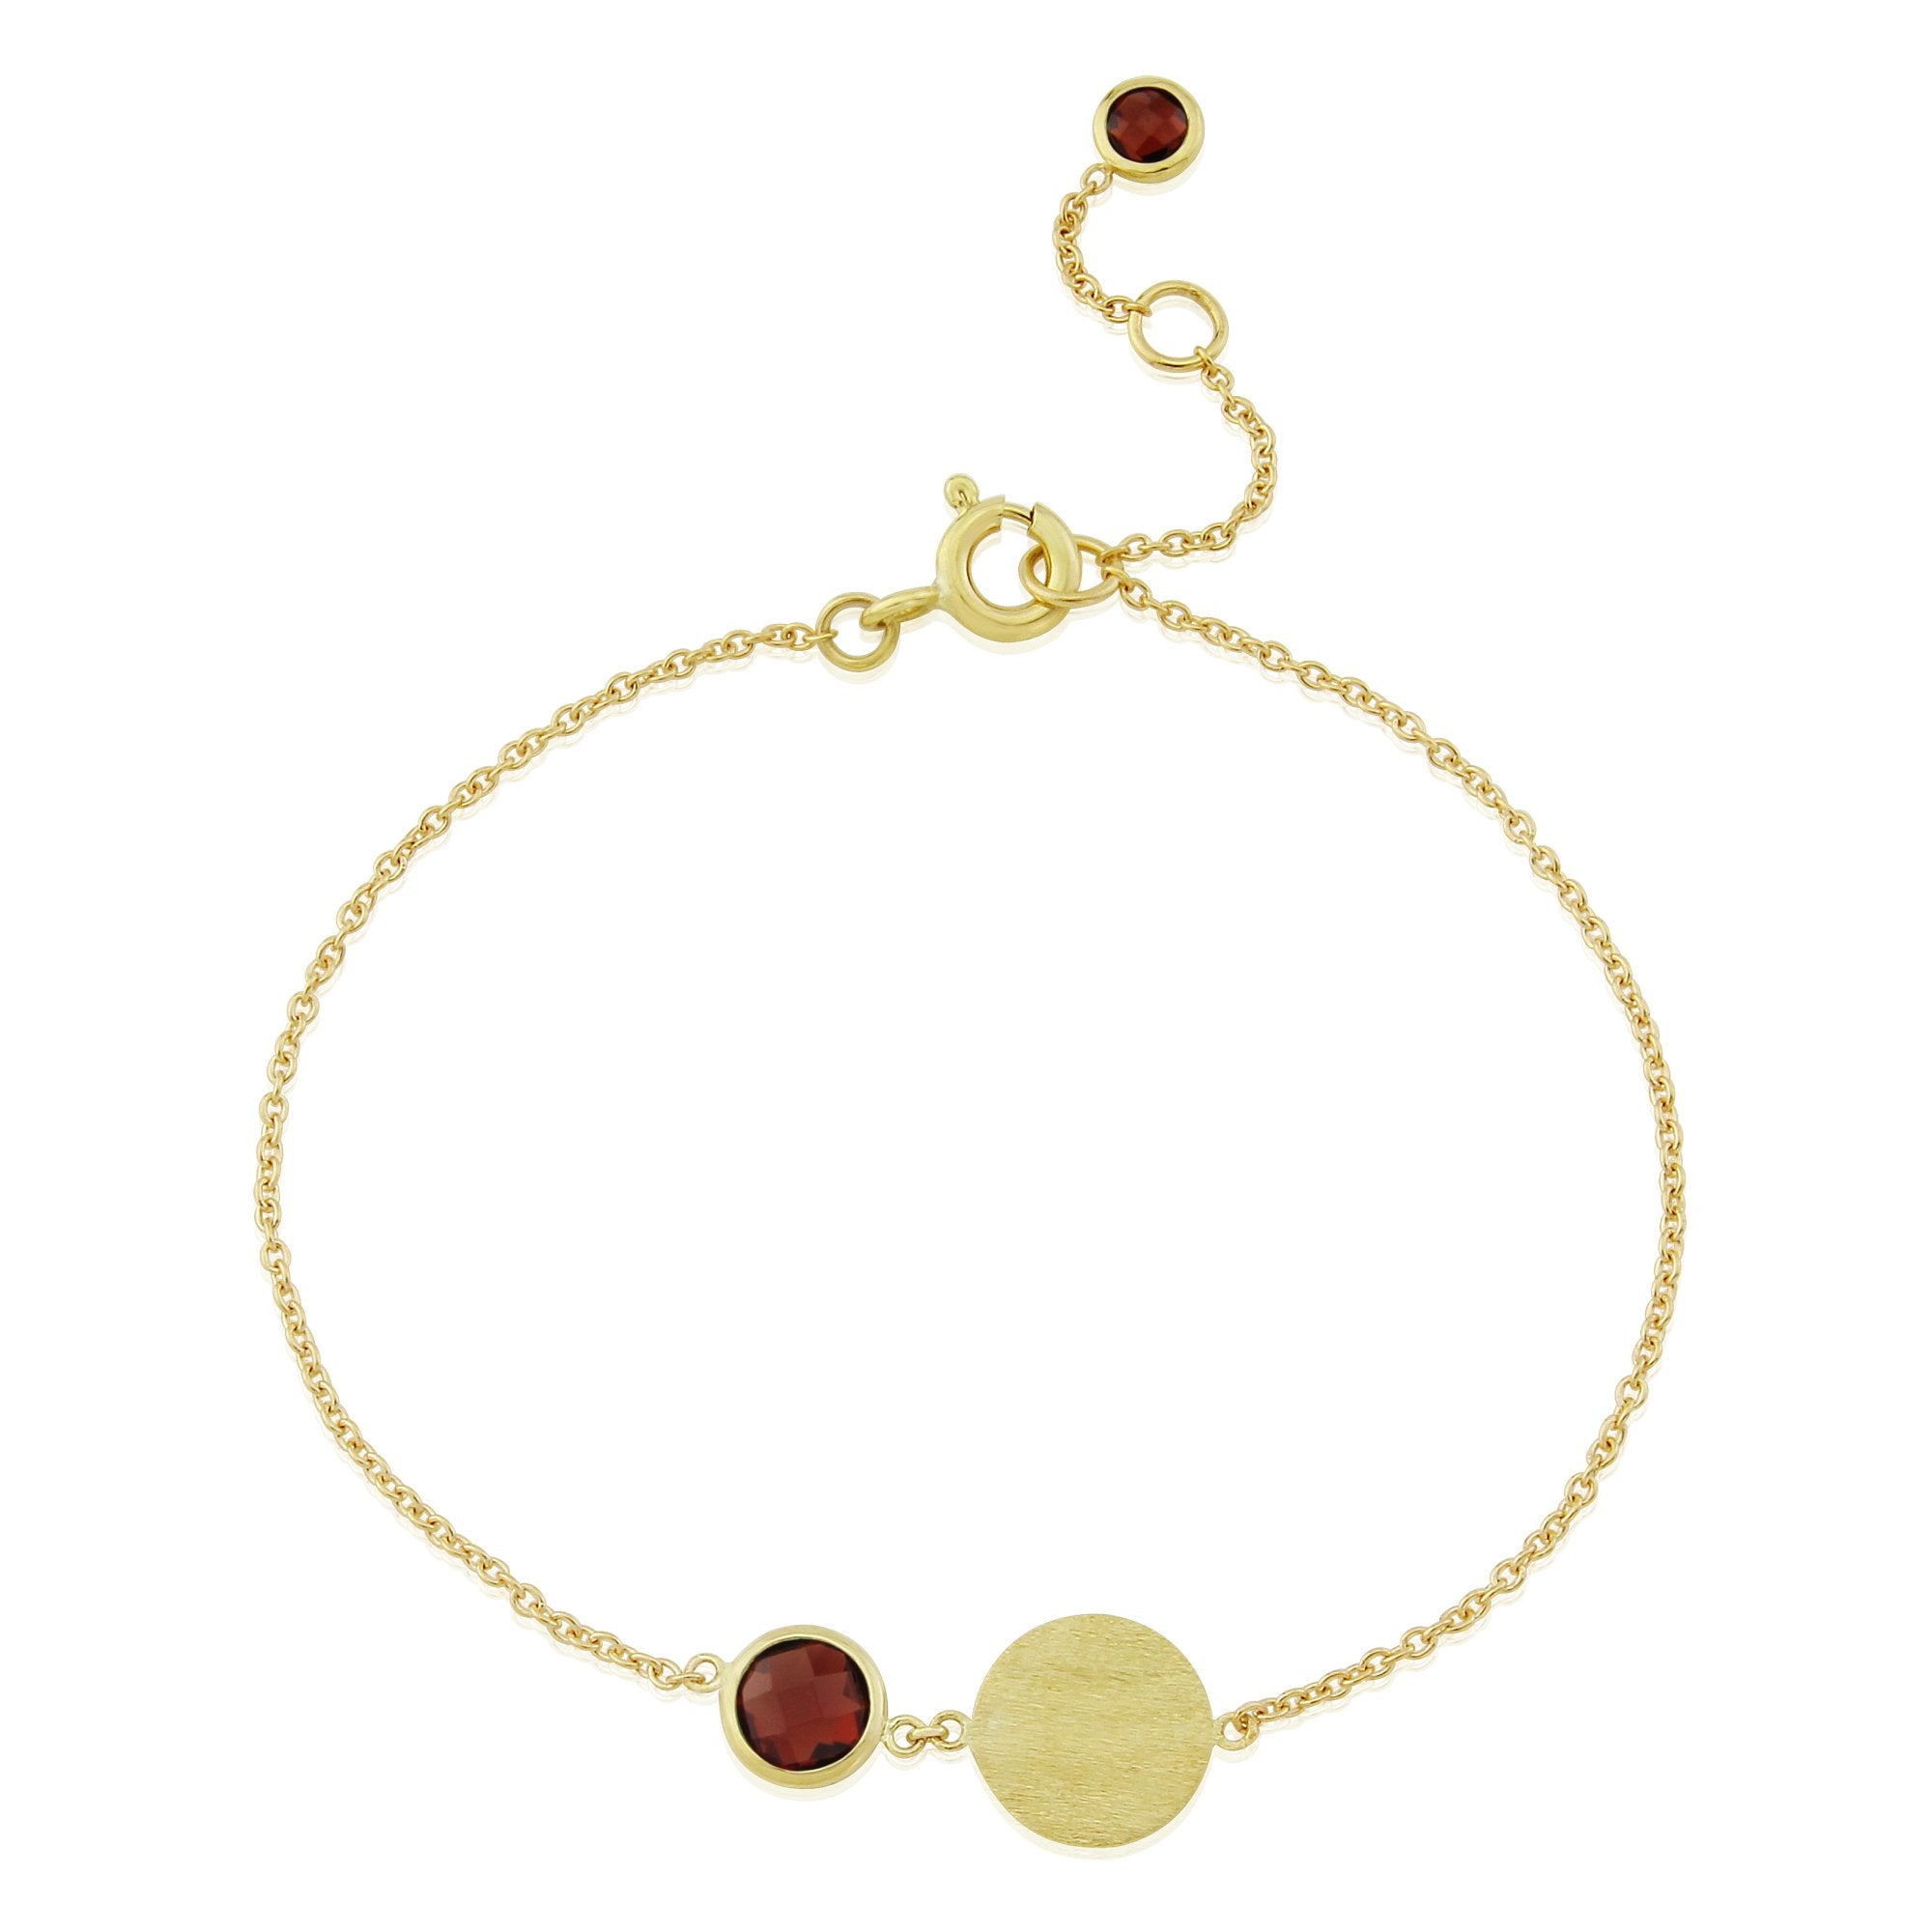 Bali January Birthstone Bracelet Garnet-AUREE JEWELLERY-HOUSE of BOTTA